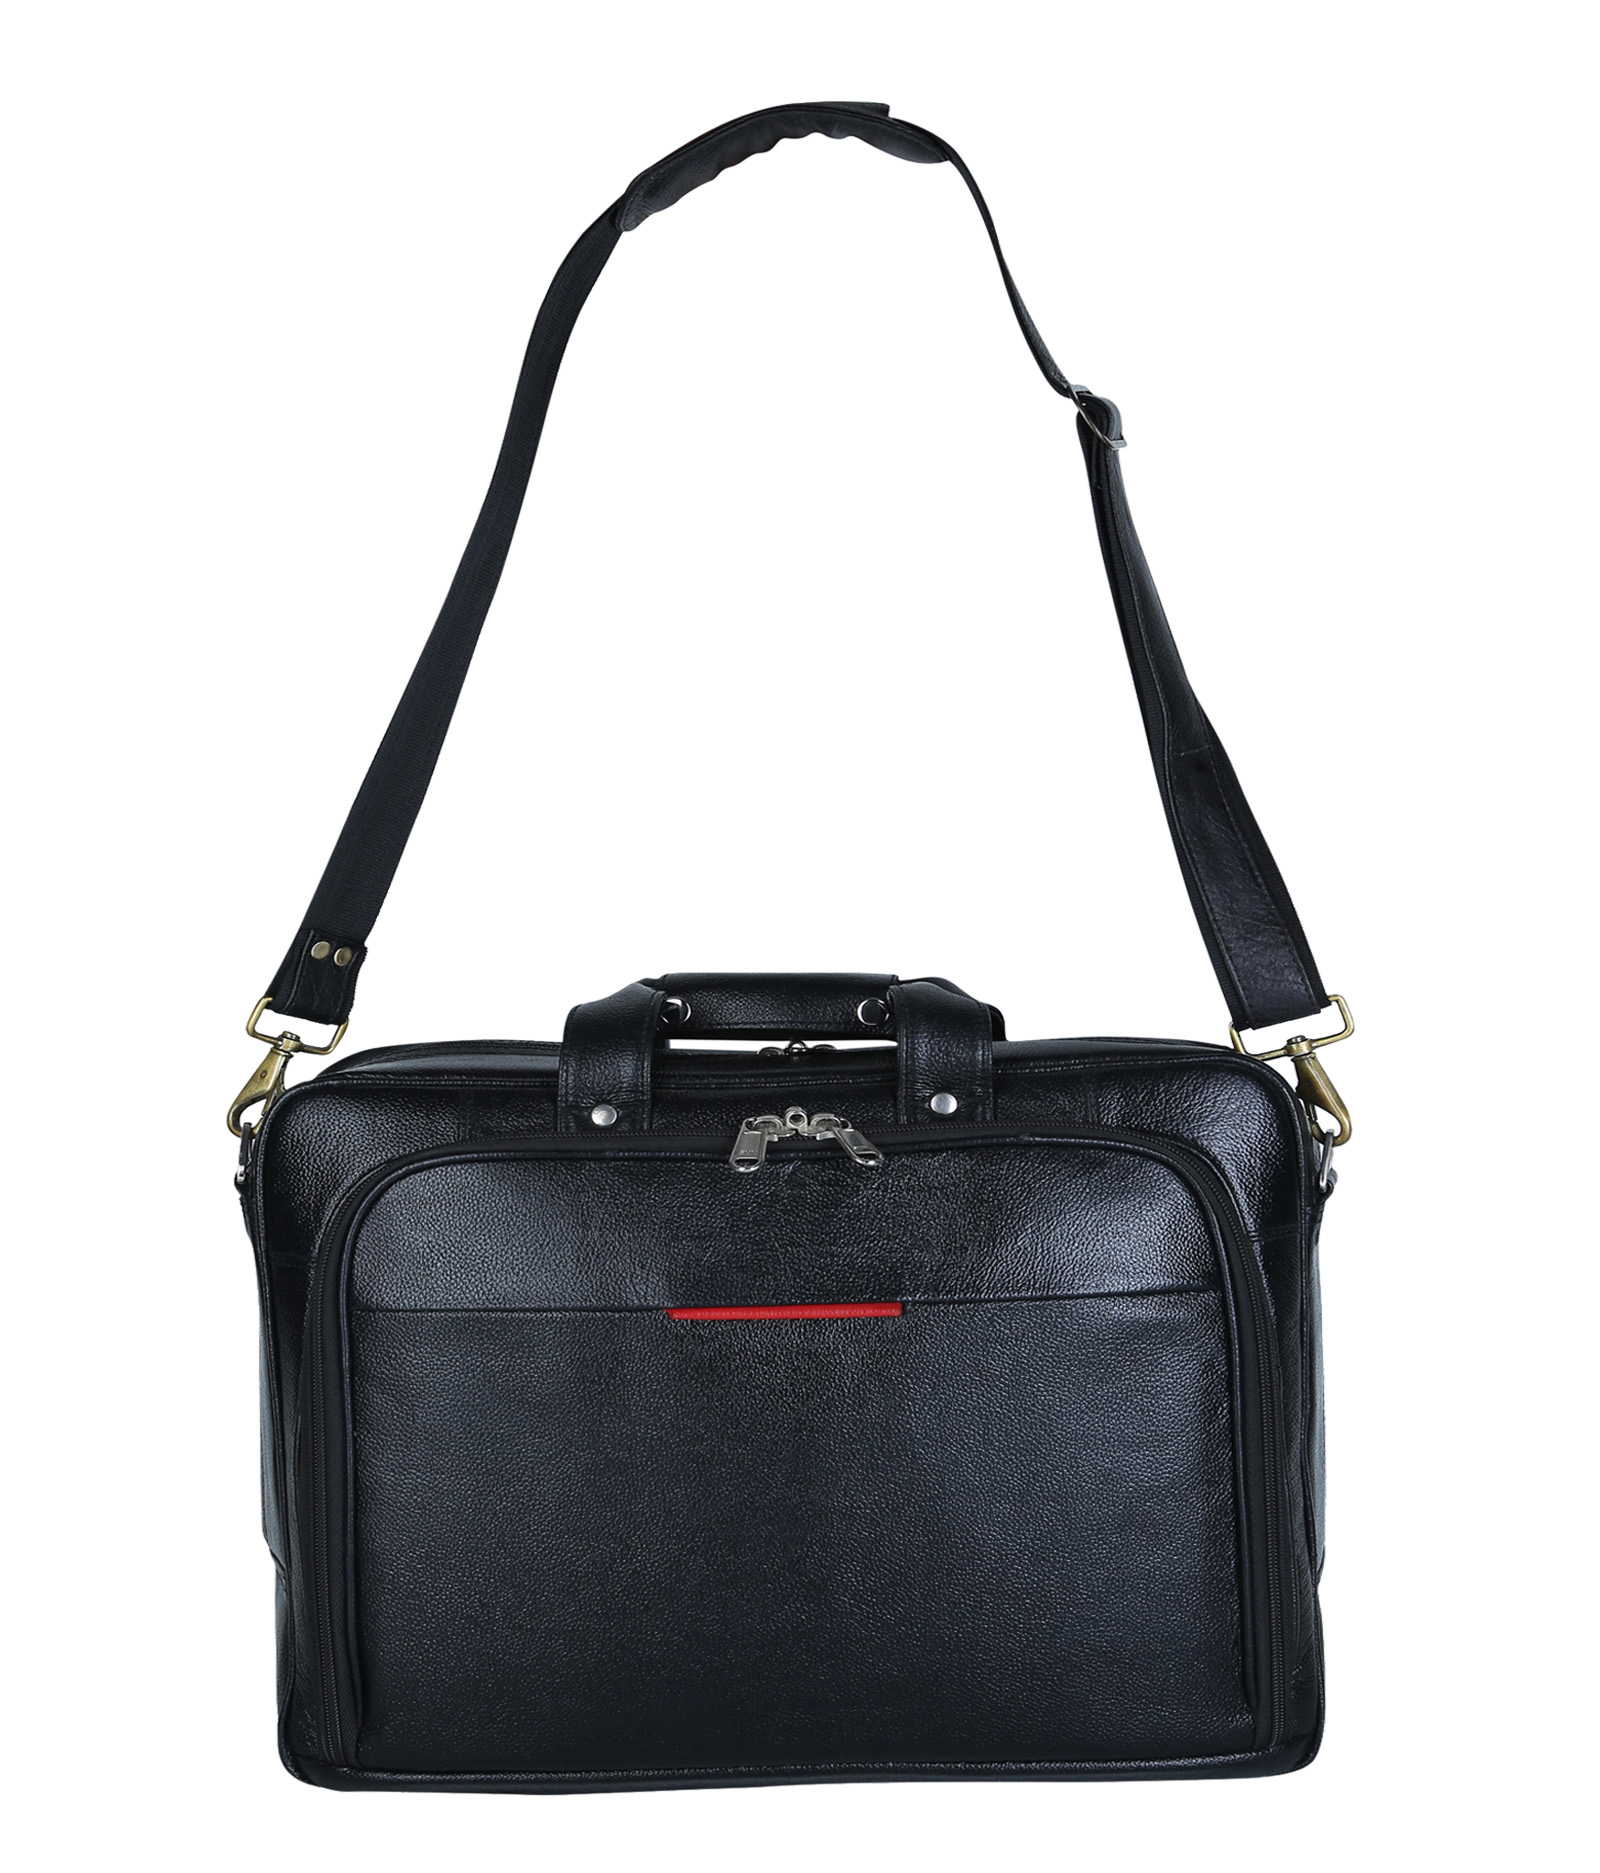 clithscom1 American-elm Black Leather 3 Compartments Laptop Bag (13.5x3.5x15.5) Inches